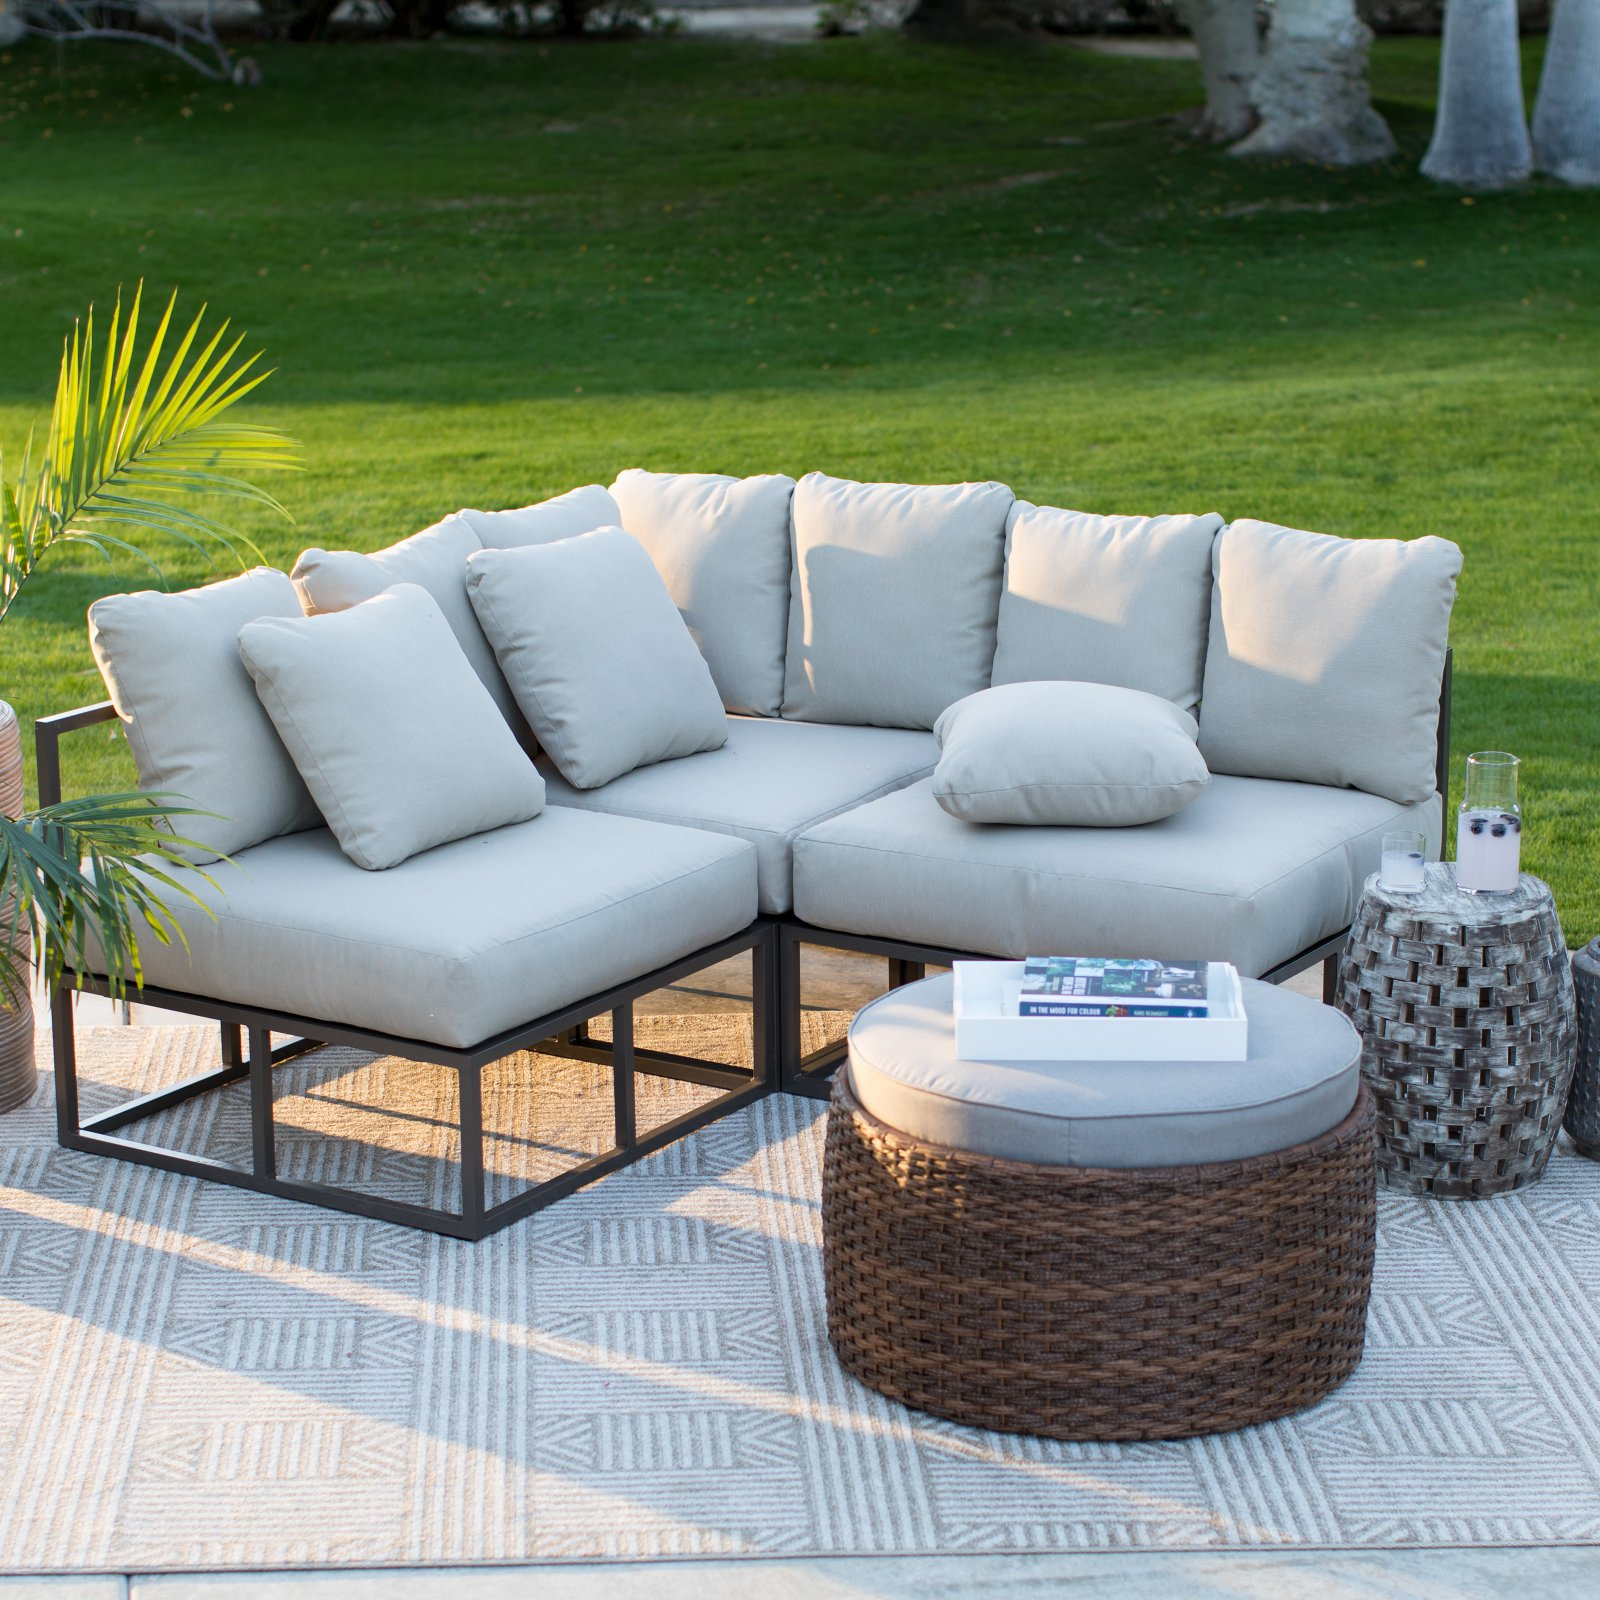 Belham Living Bonaire Aluminum 3 Piece Outdoor Sectional Sofa Set